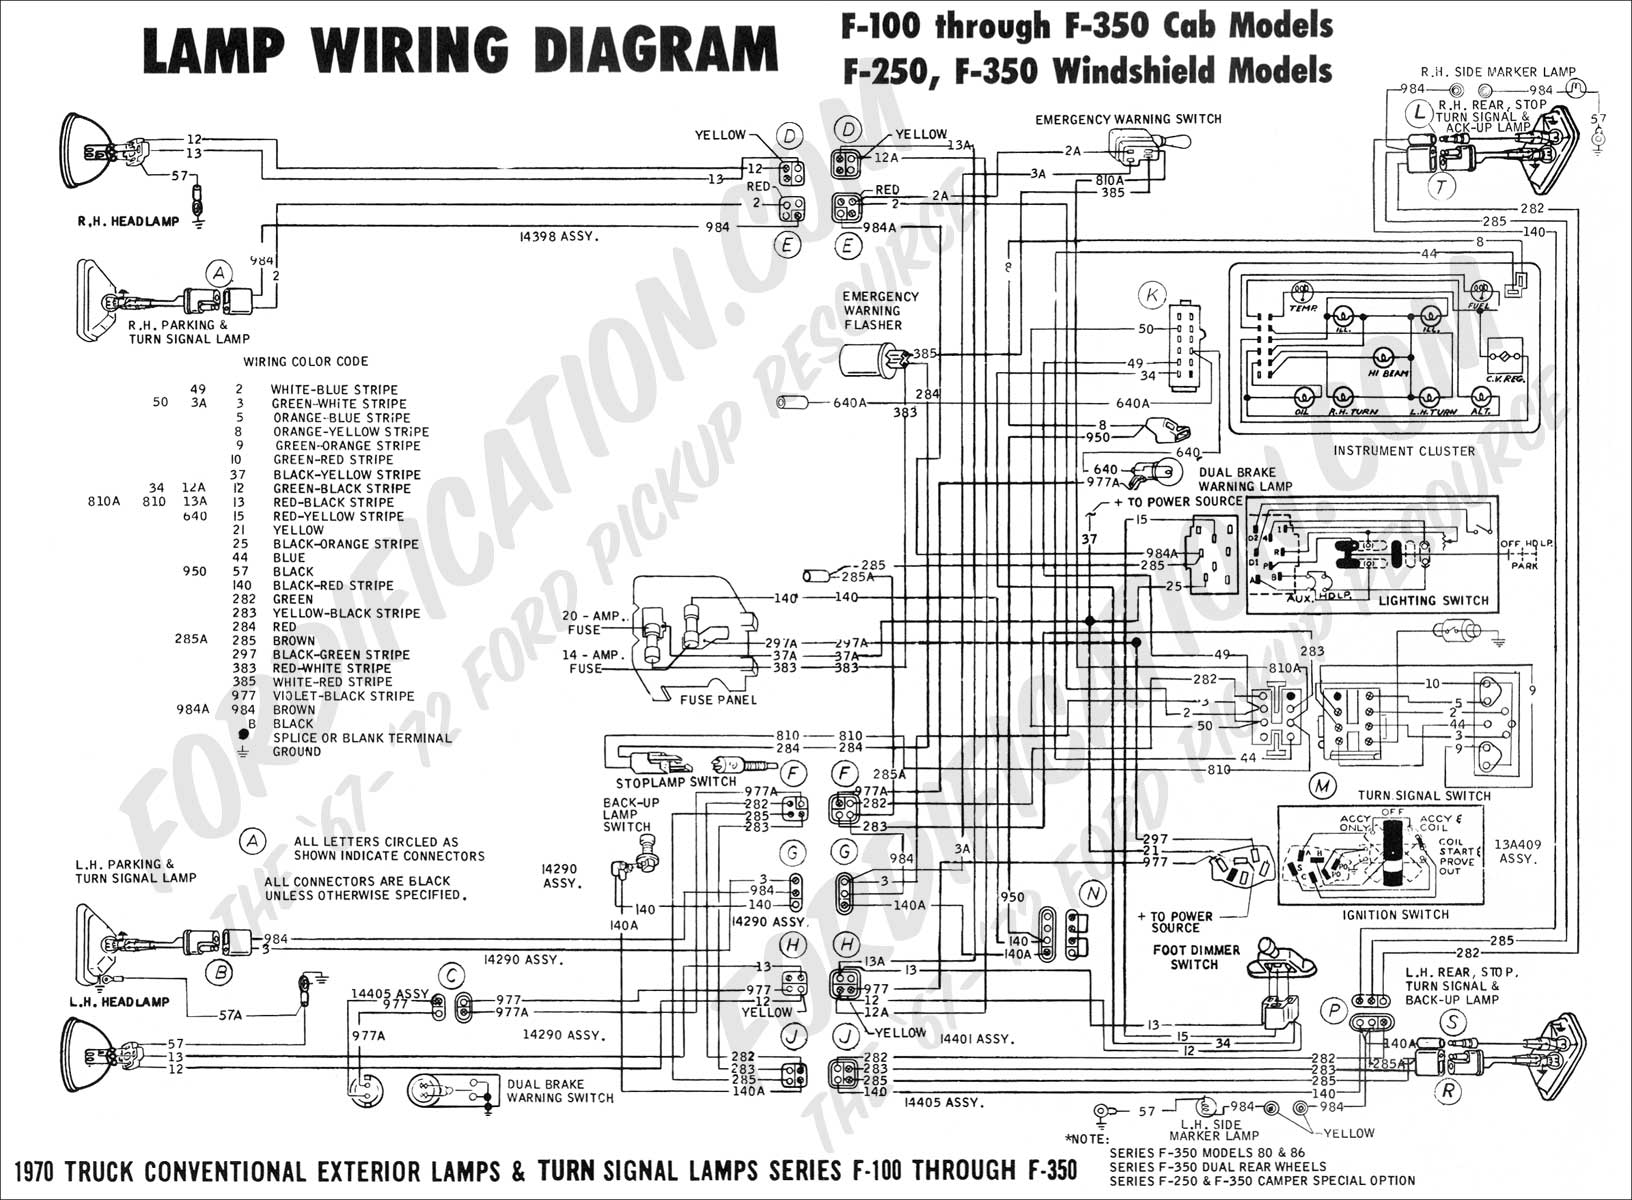 1975 Ford F 250 Wiring Schematic Library 70 Vw Diagram Truck Technical Drawings And Schematics Section H Rh Fordification Com 1968 F100